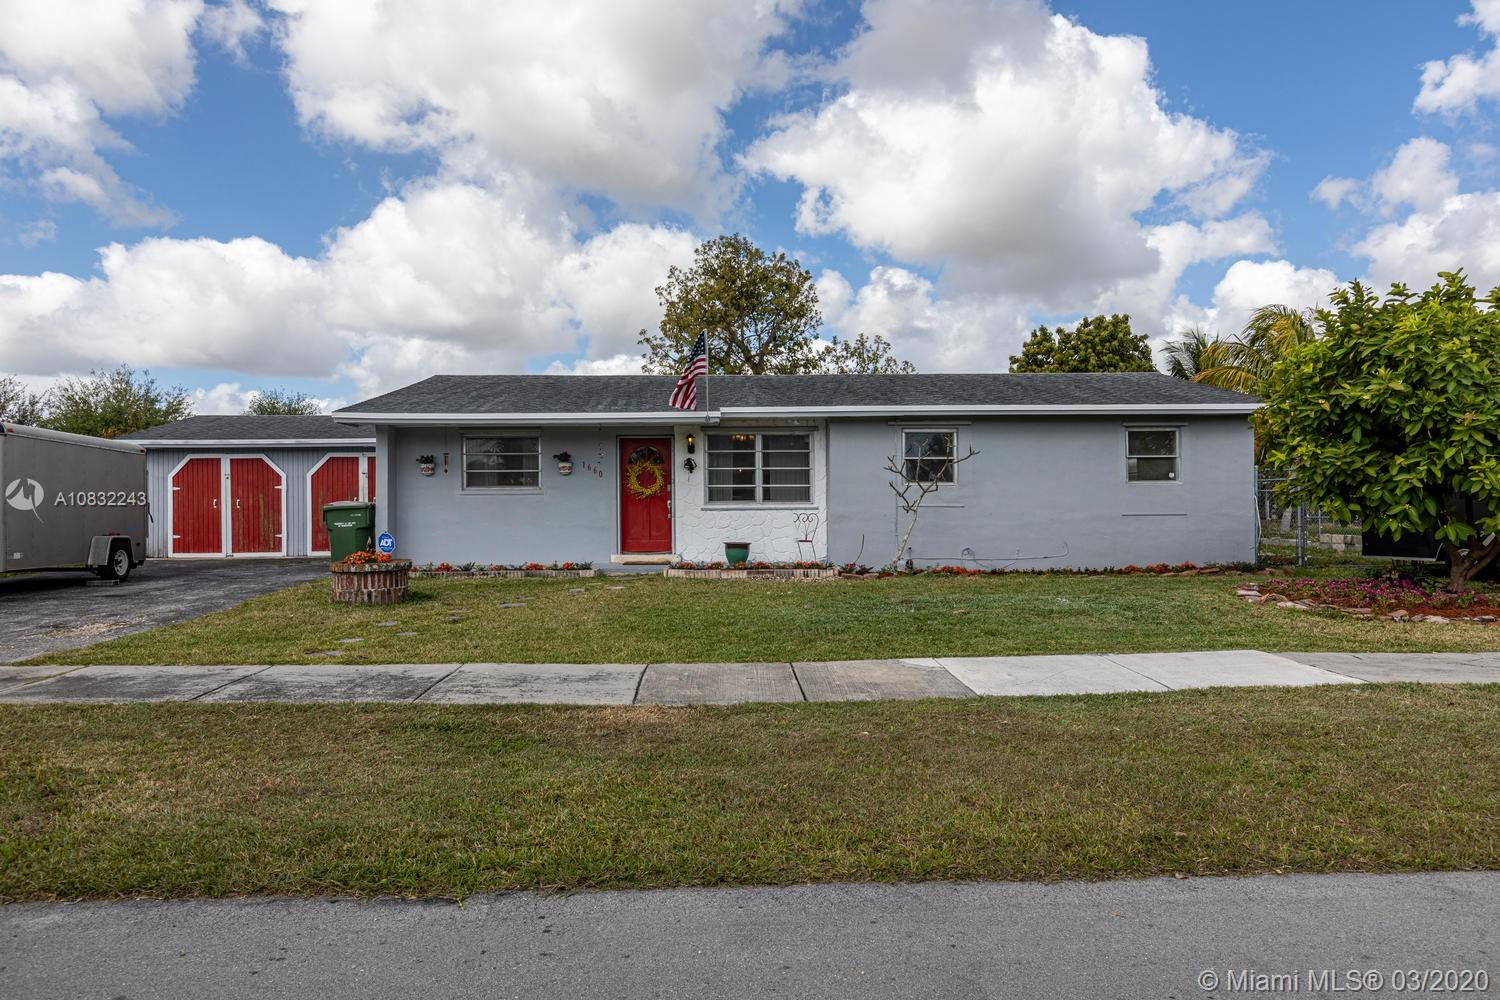 1660 NW 10th Ave, Homestead, FL 33030 - Homestead, FL real estate listing